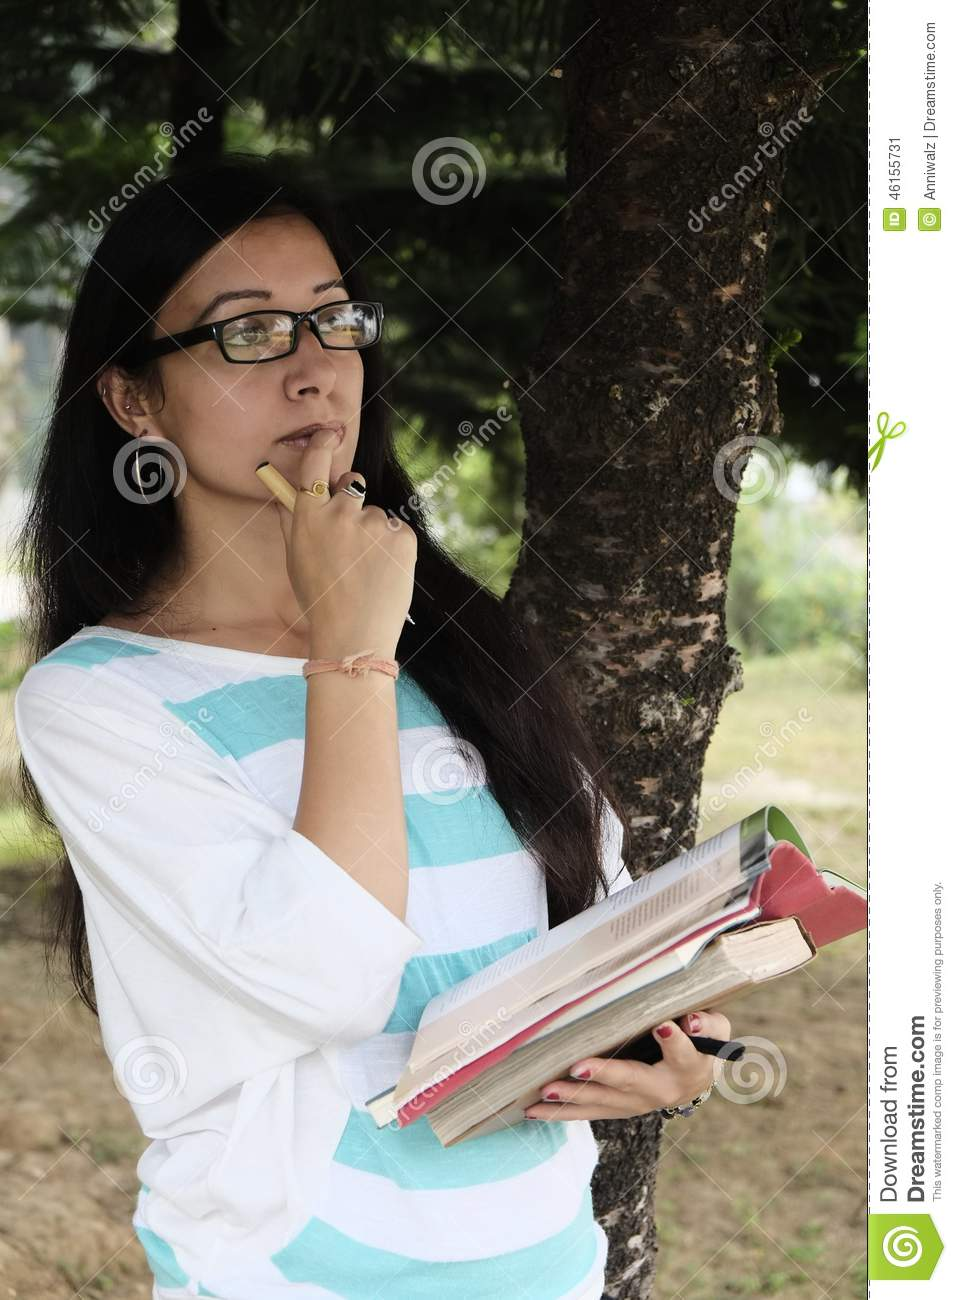 indian college student taking important decision stock image - image